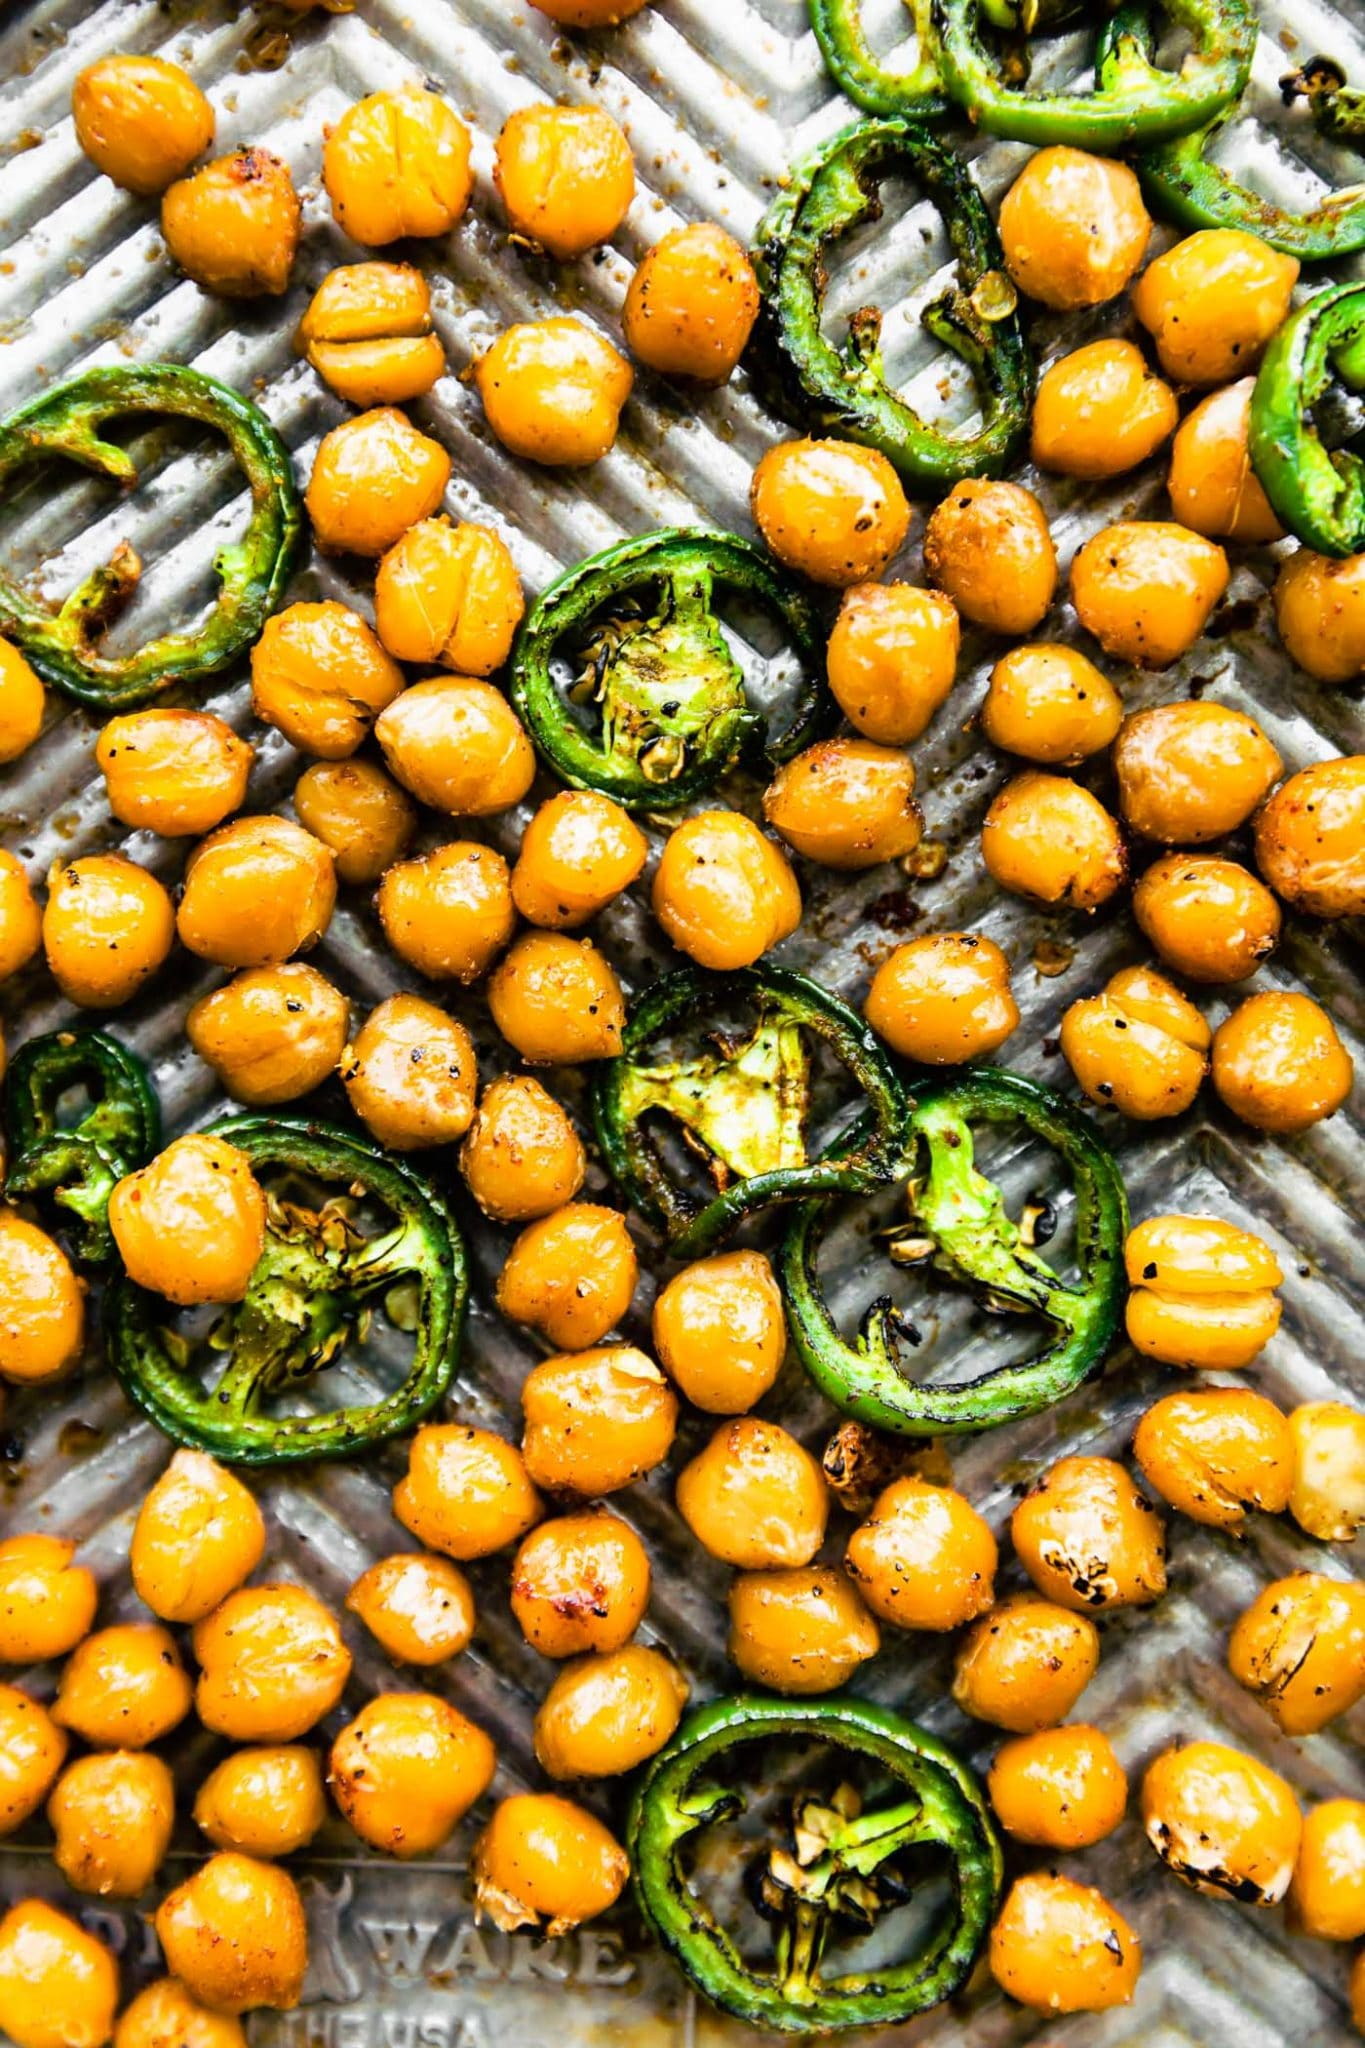 Roasted chickpeas and jalapeños on a baking sheet